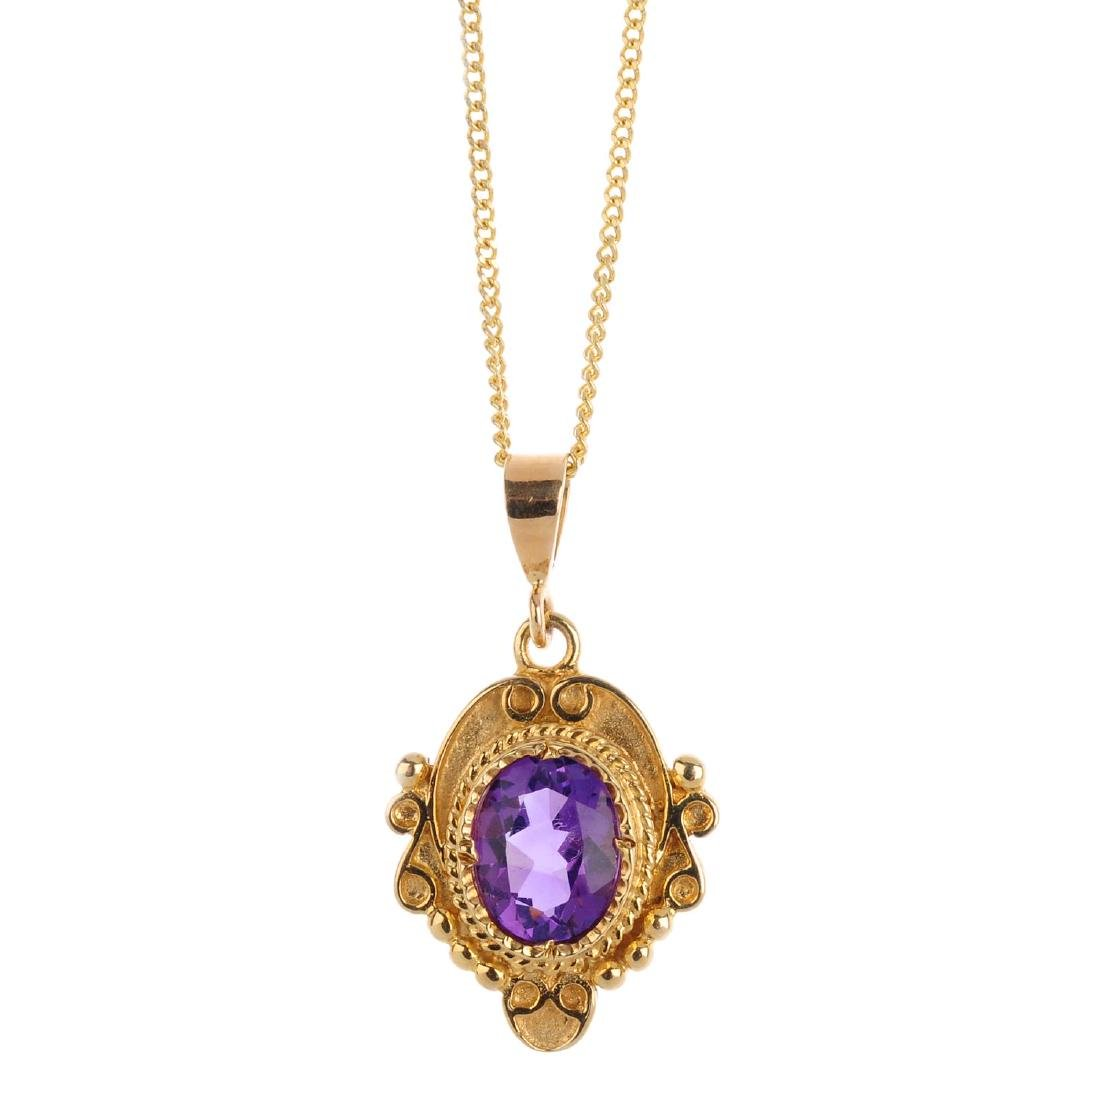 An amethyst pendant. The oval-shape amethyst, within a